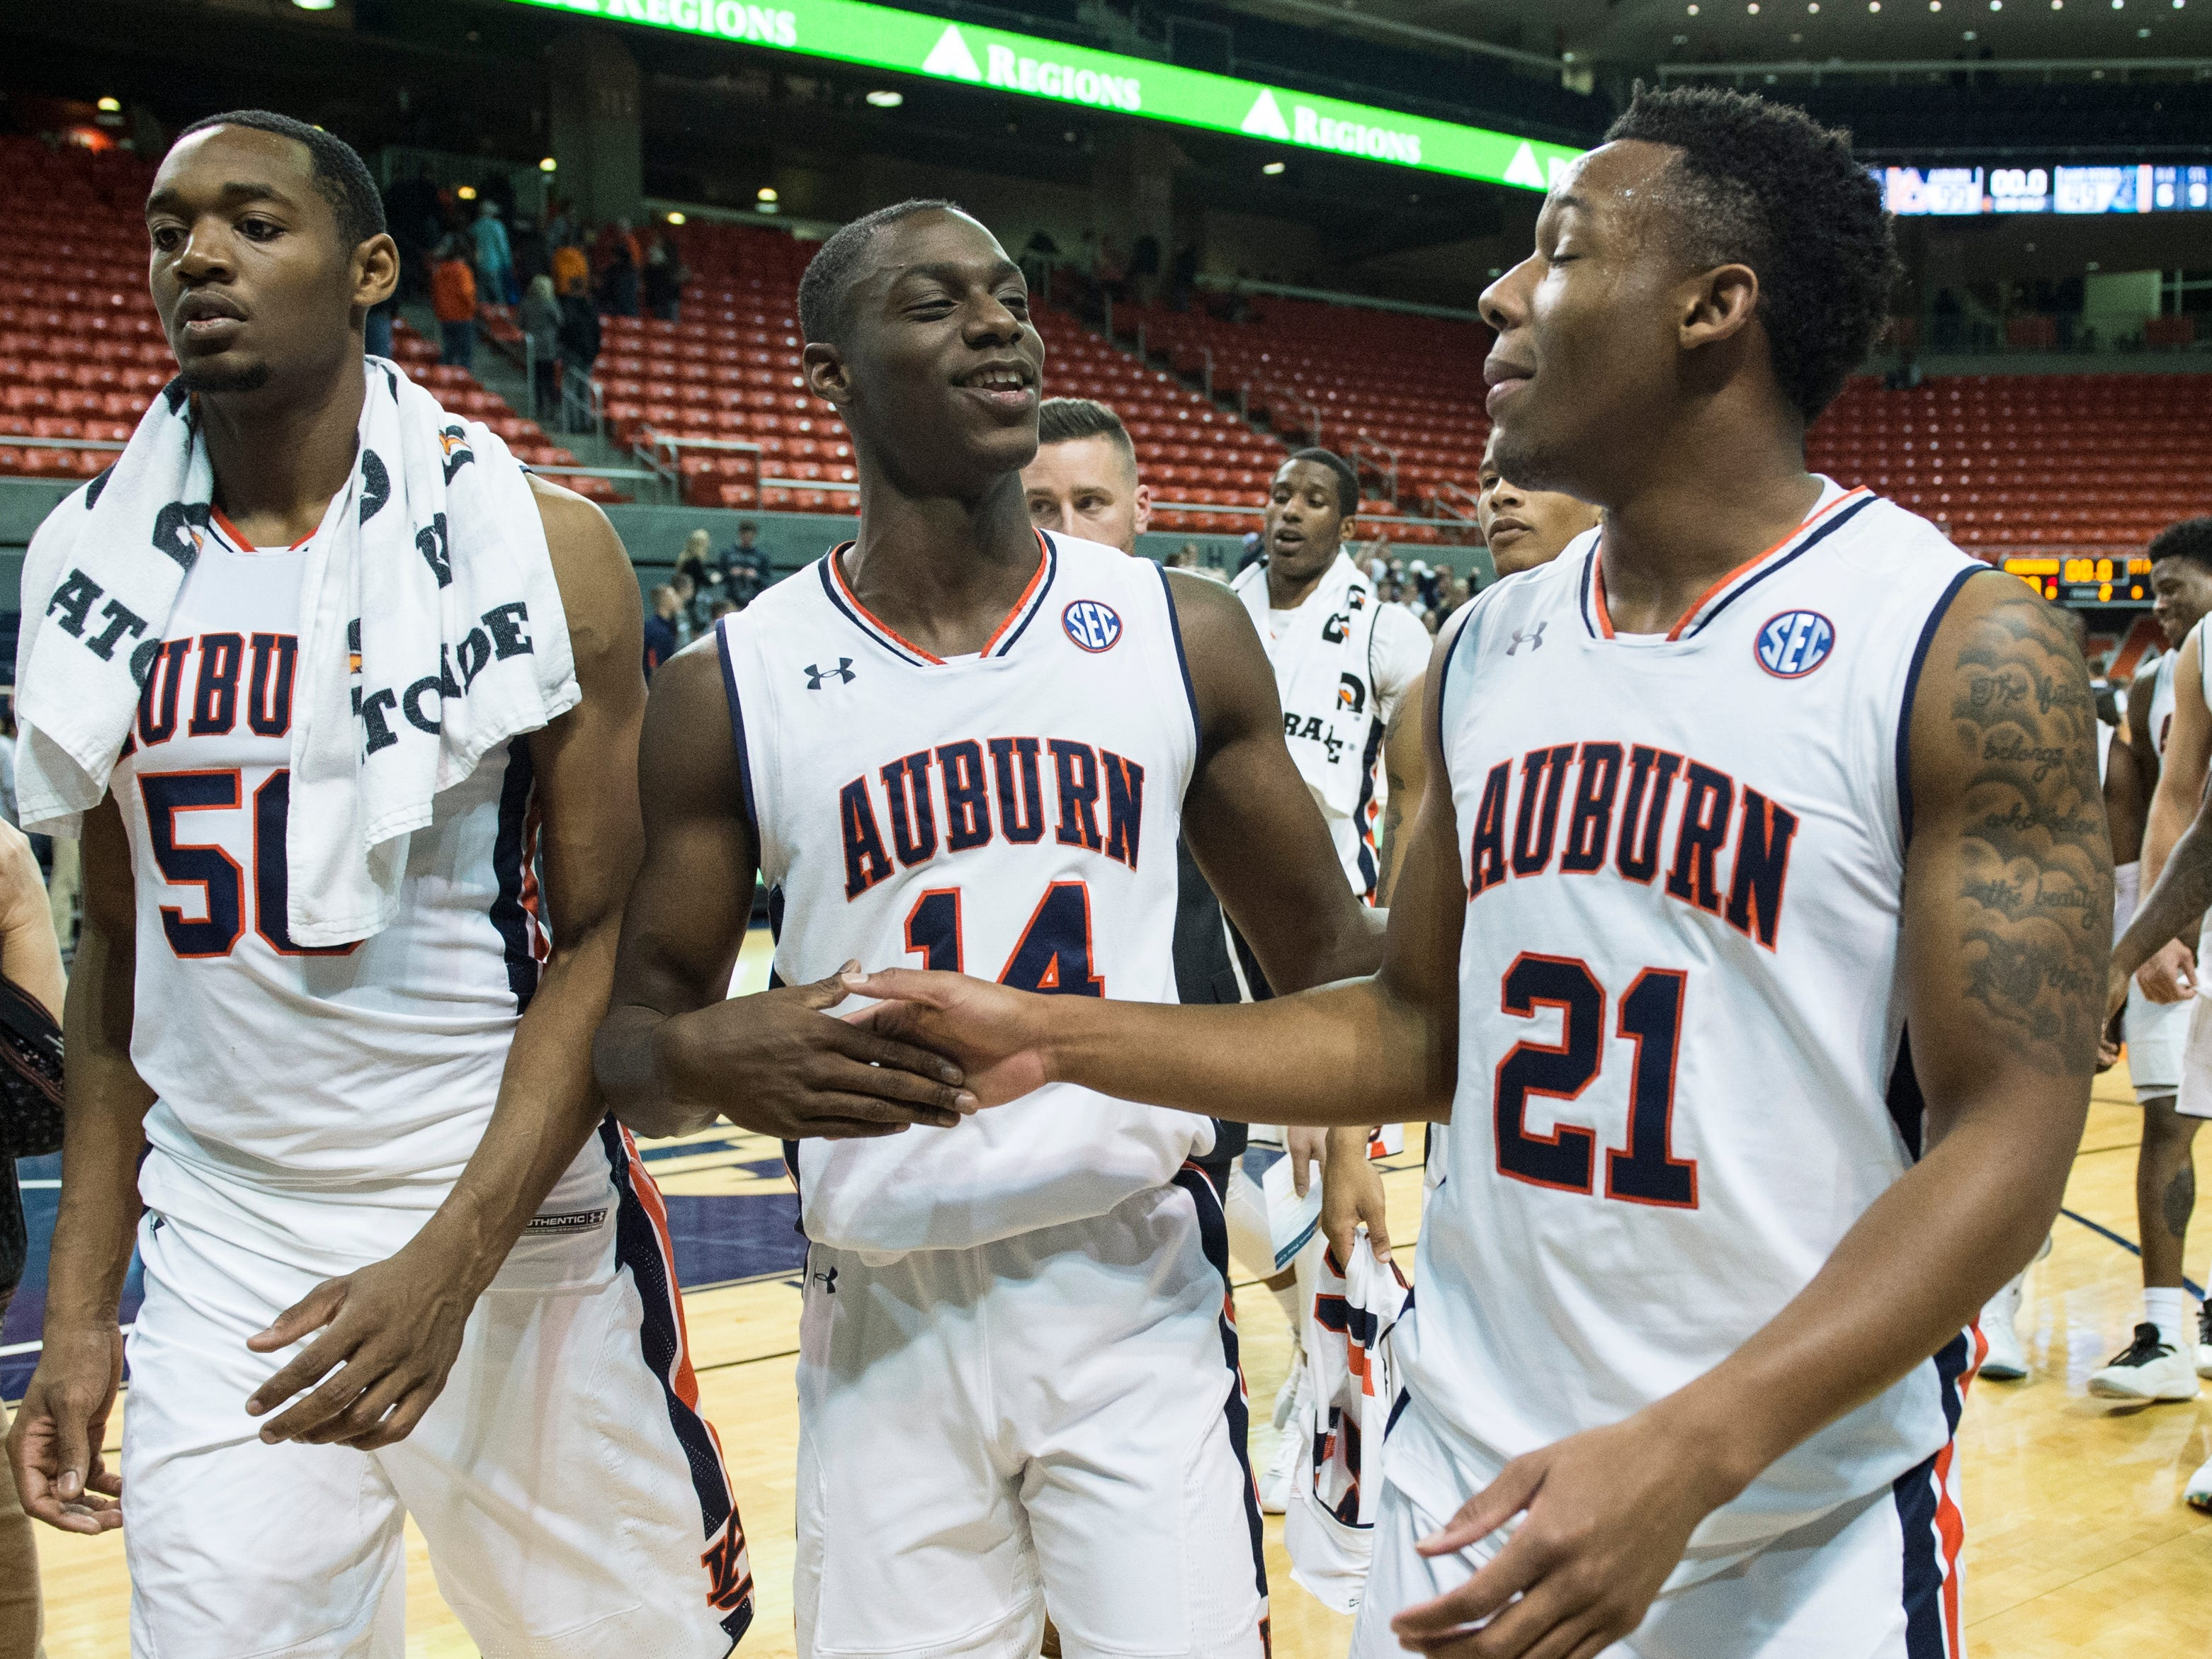 Auburn players walk off the court after the game at Auburn Arena in Auburn, Ala., on Wednesday, Nov. 28, 2018. Auburn defeated Saint Peter's 99-49.